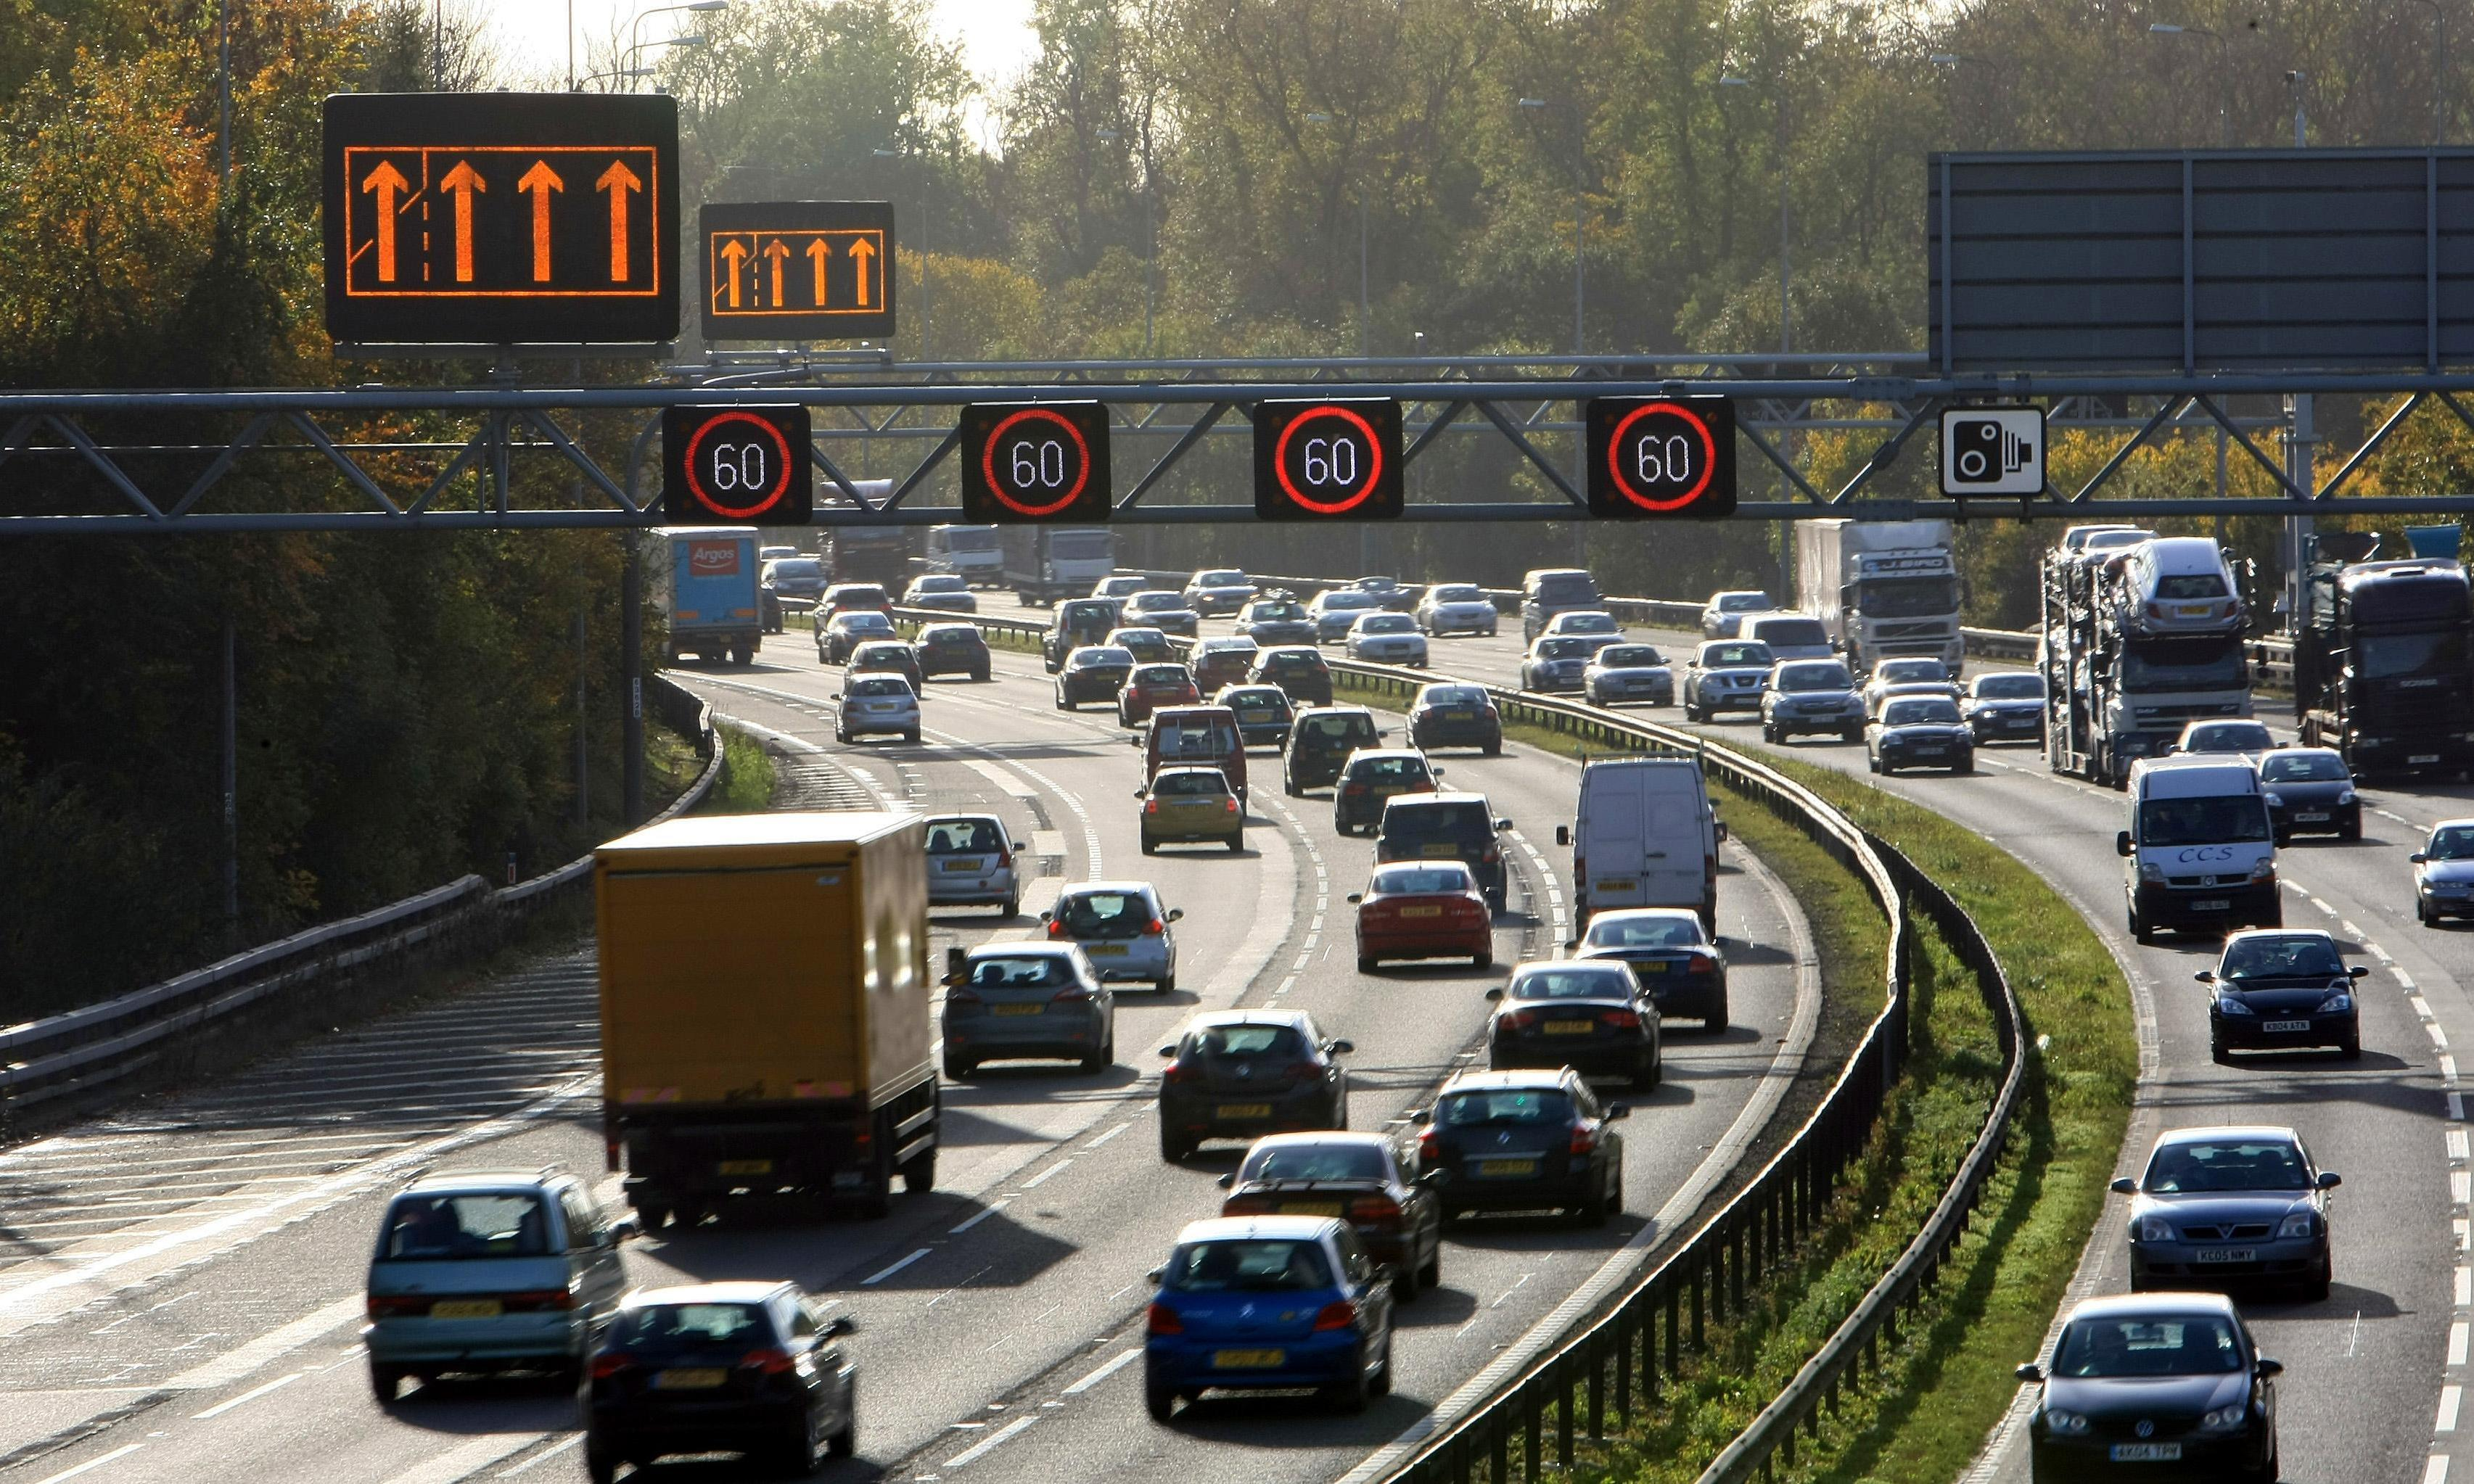 Highways England's smart motorways policy killed drivers, says ex-minister